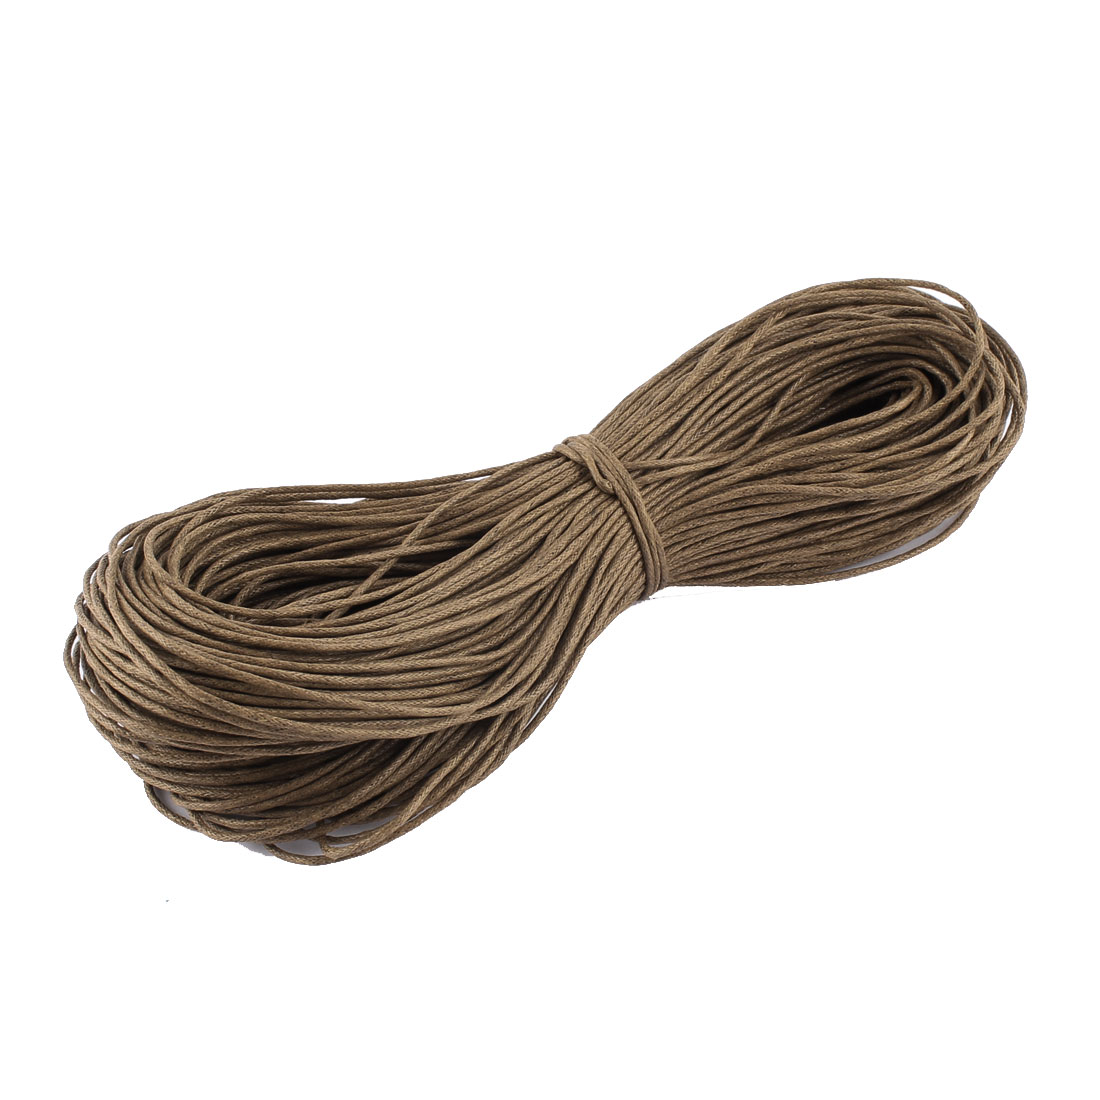 Bracelet Necklace Round Faux Leather String Beading Thread Cord Coffee Color 80m Length